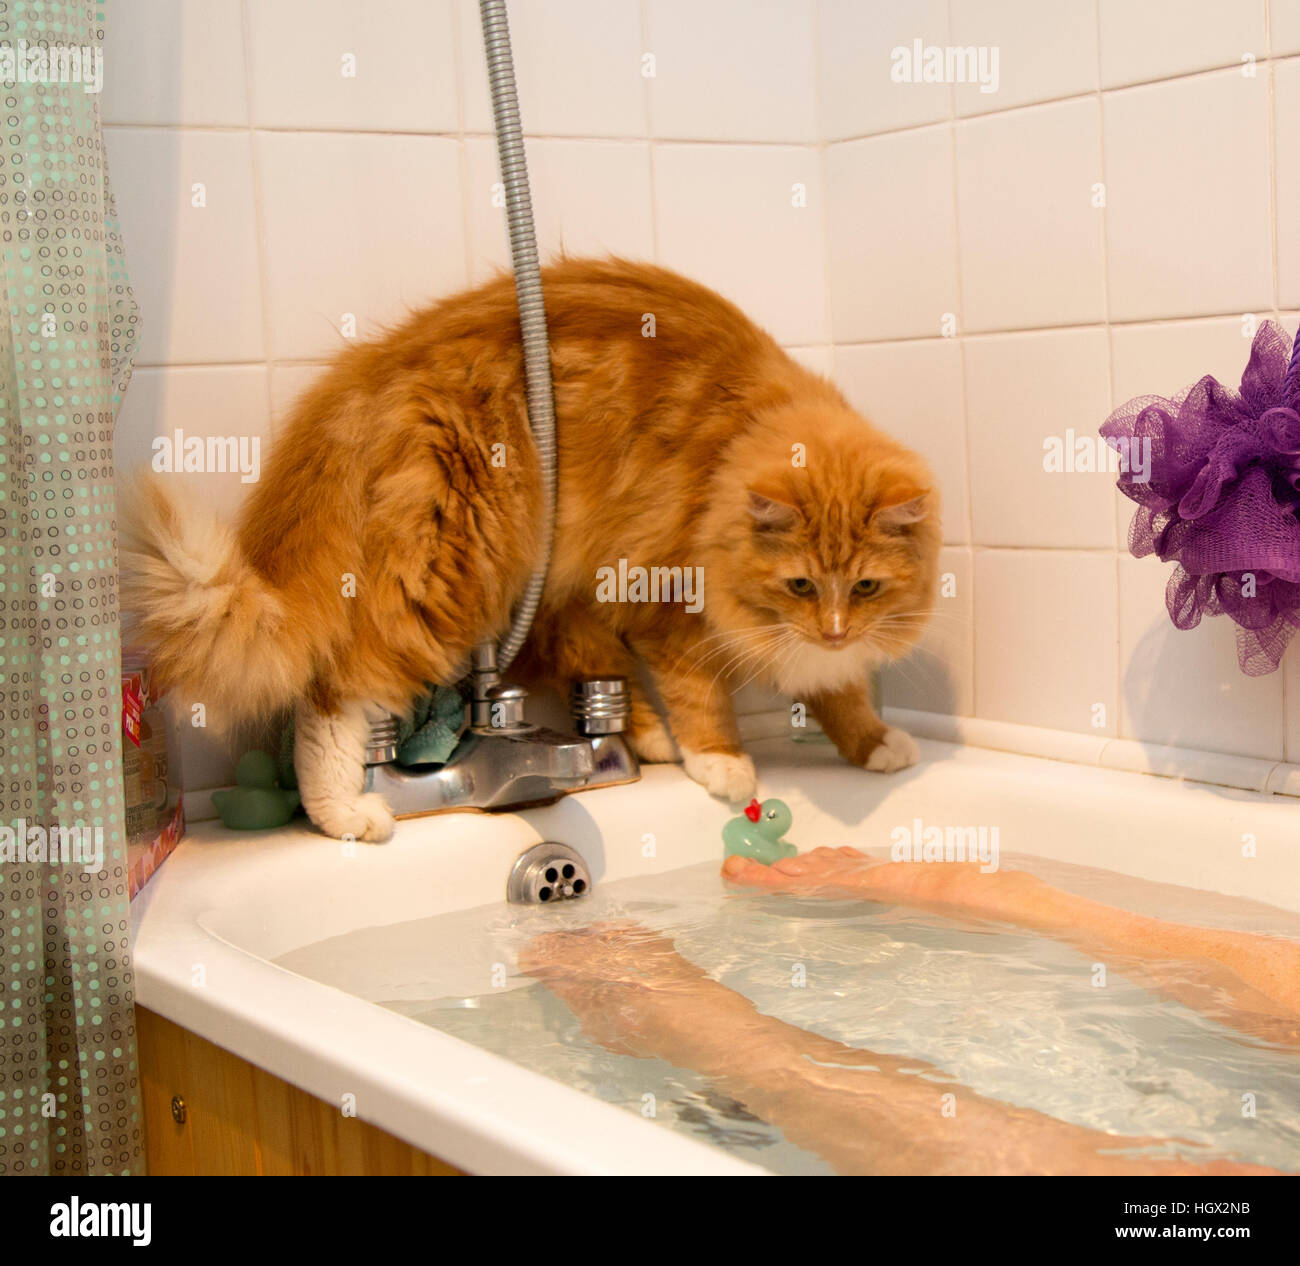 A ginger kitten/cat balances on the edge of a bath tub whilst a woman is bathing. - Stock Image